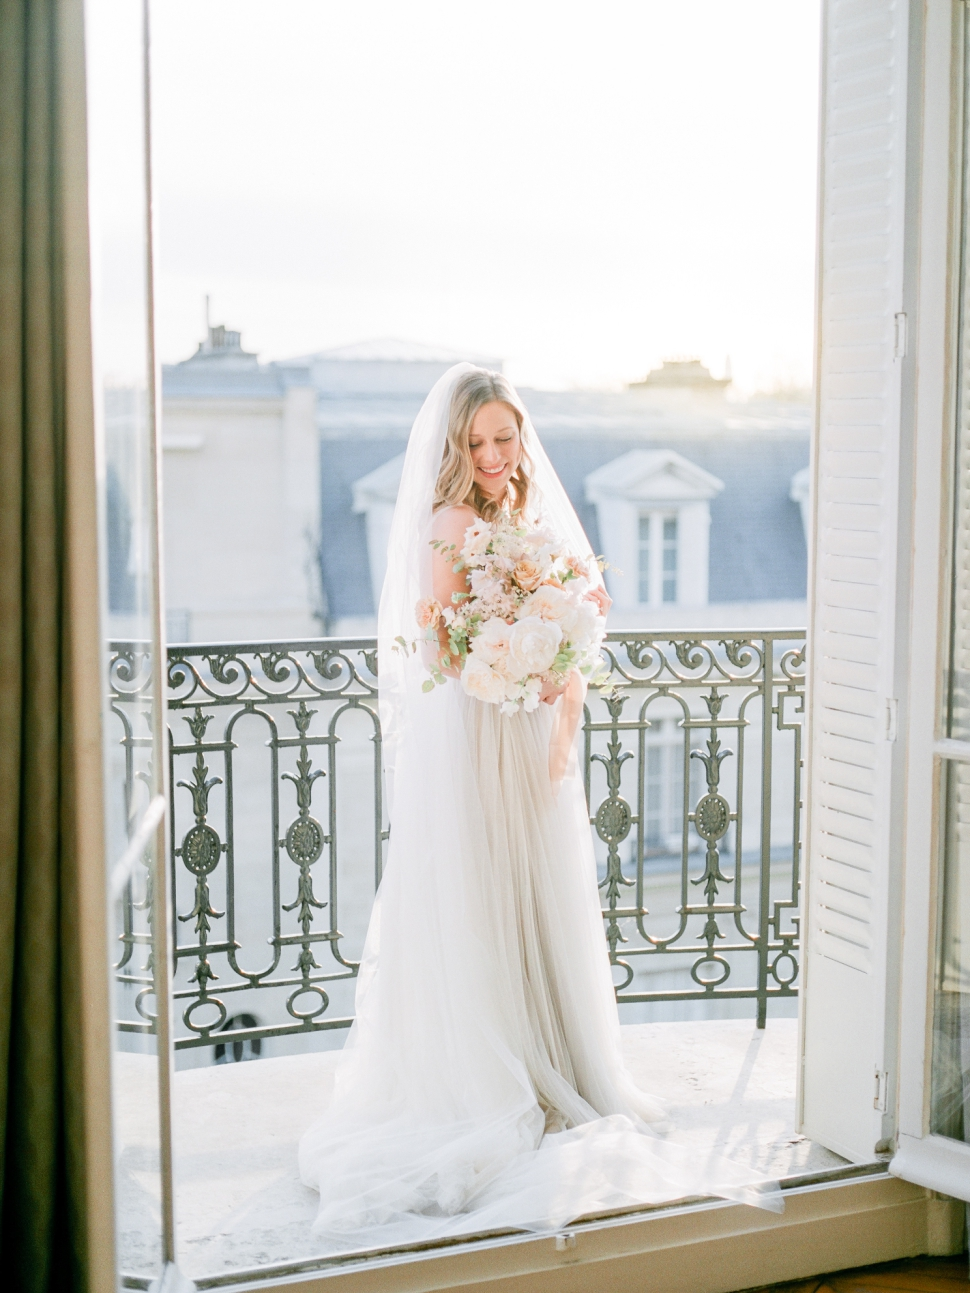 Paris-France-Destination-Wedding-Photographer-Cassi-Claire-Shangri-La-Paris-Wedding-Photos_023.jpg